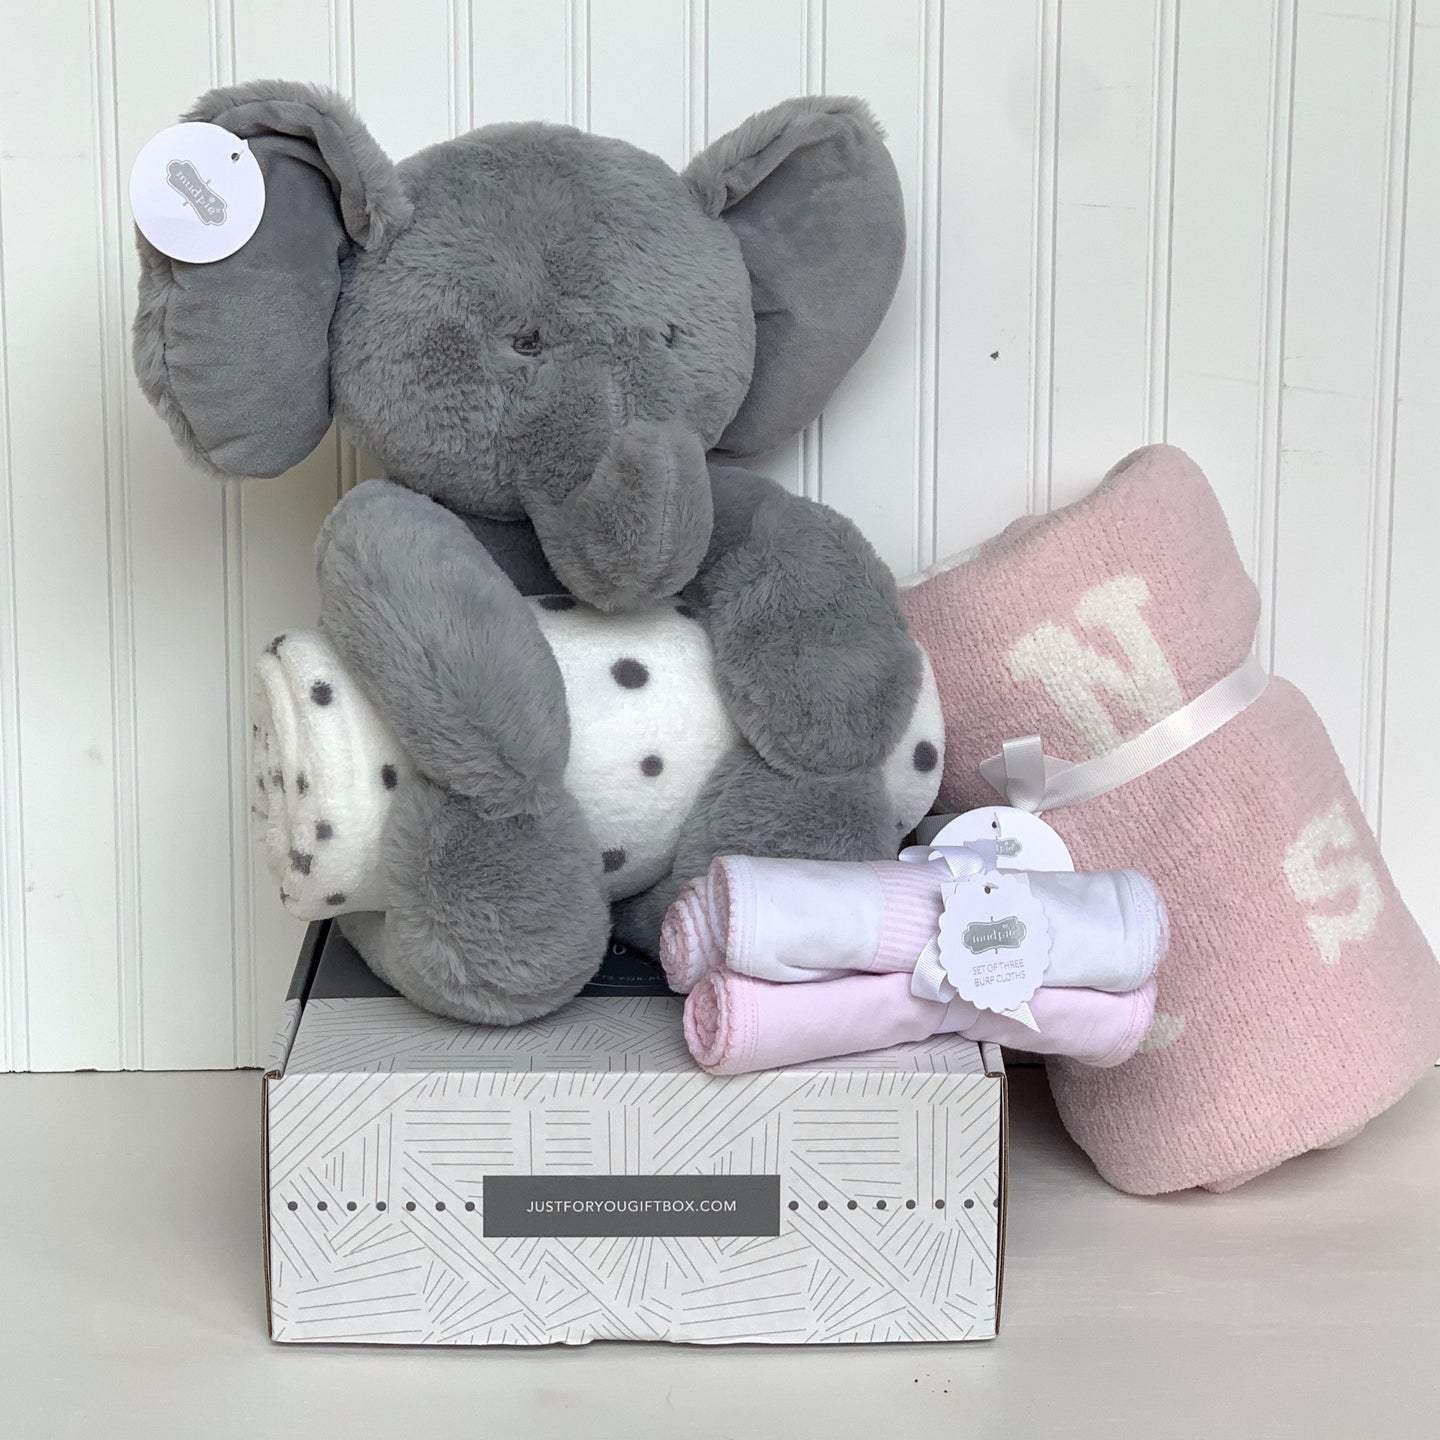 Adorable Mud Pie Plush Elephant with embroidered facial features.  Rolled soft polka dot blanket included  Pink Chenille ABC Blanket  3 rolled pink burp cloths